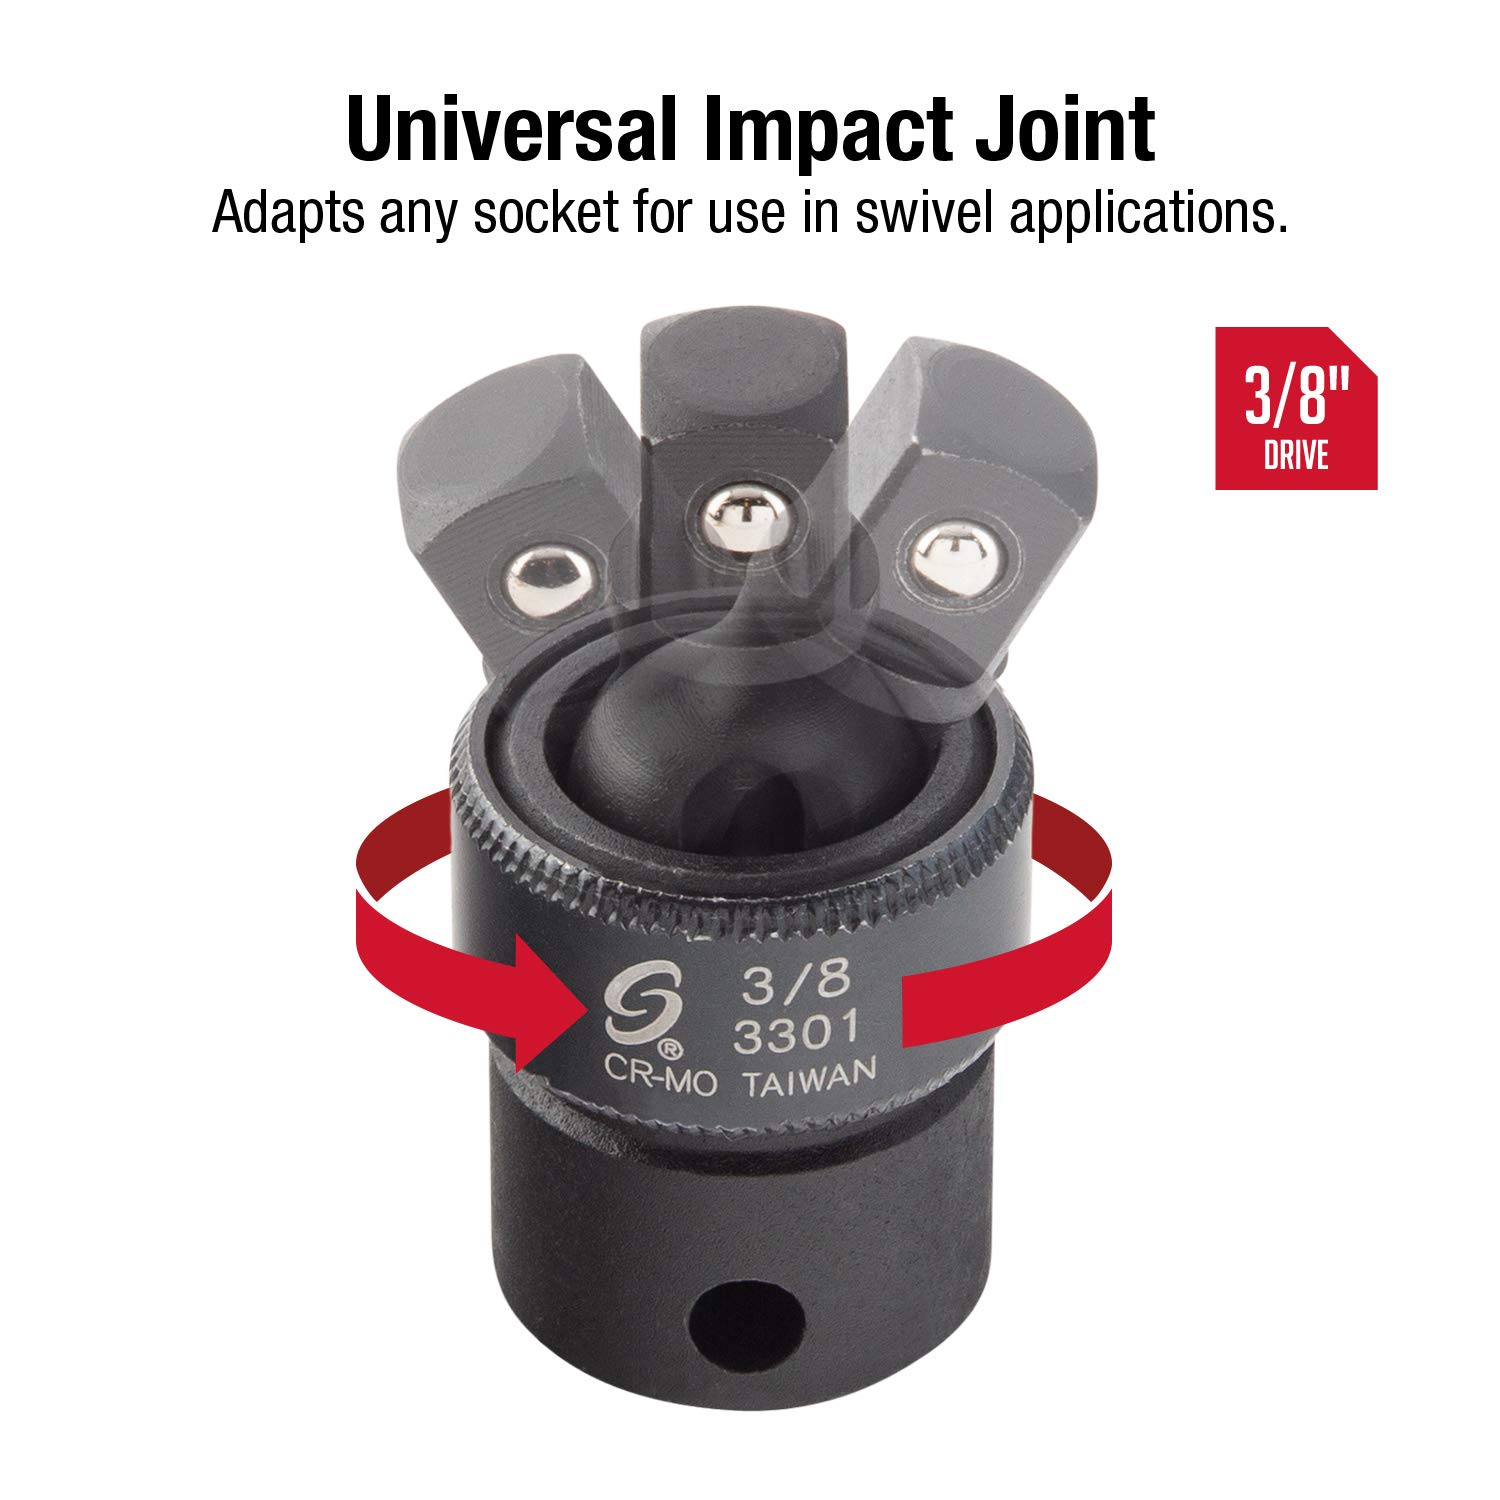 3//8DR IMP UNIVERSAL JOINT